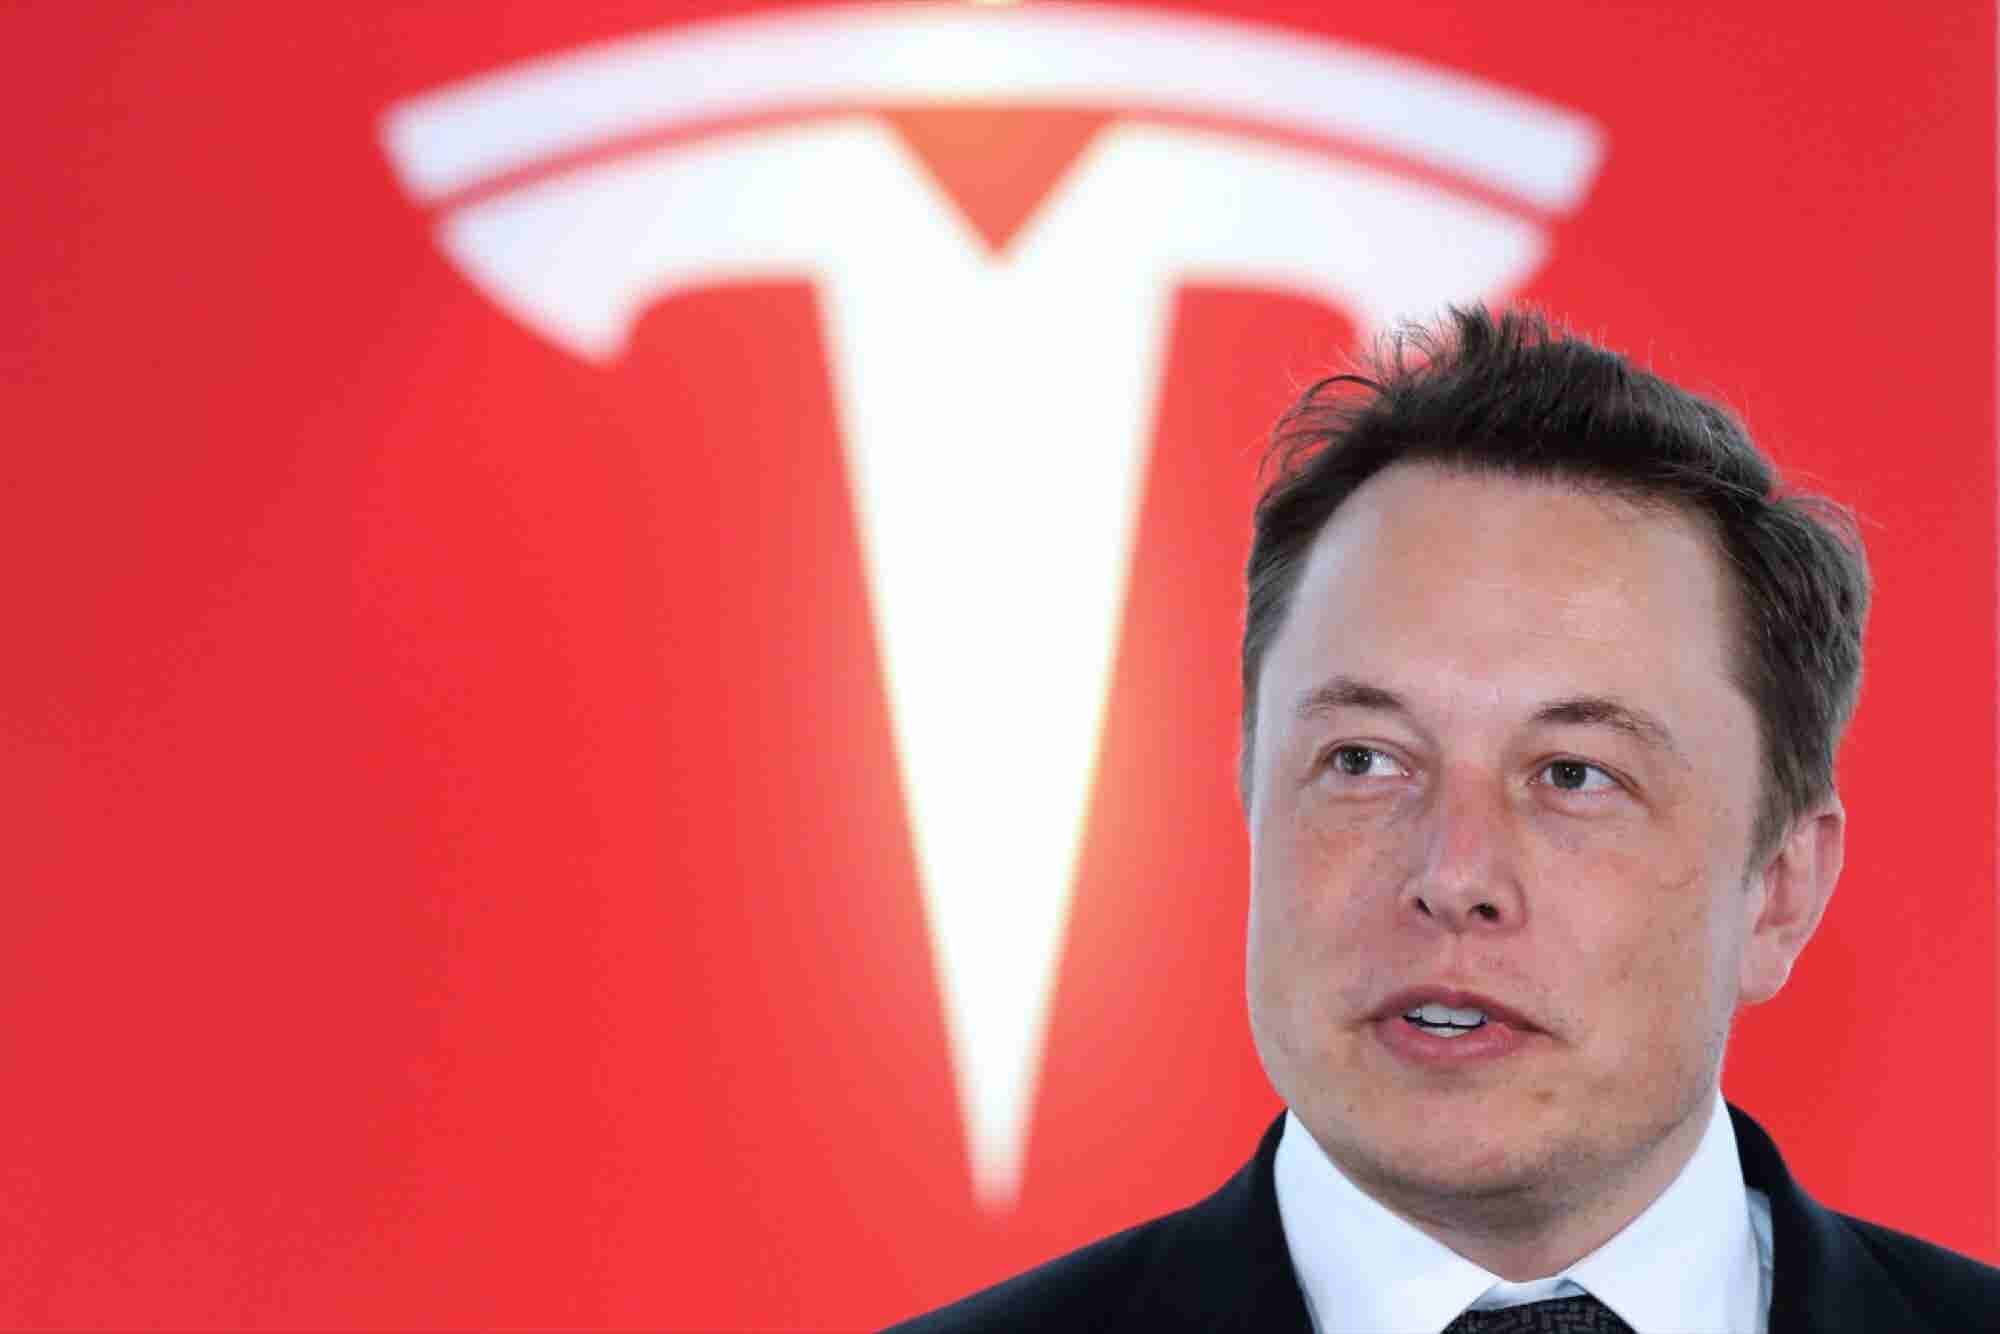 Is Elon Musk's Master Plan About to be Revealed?